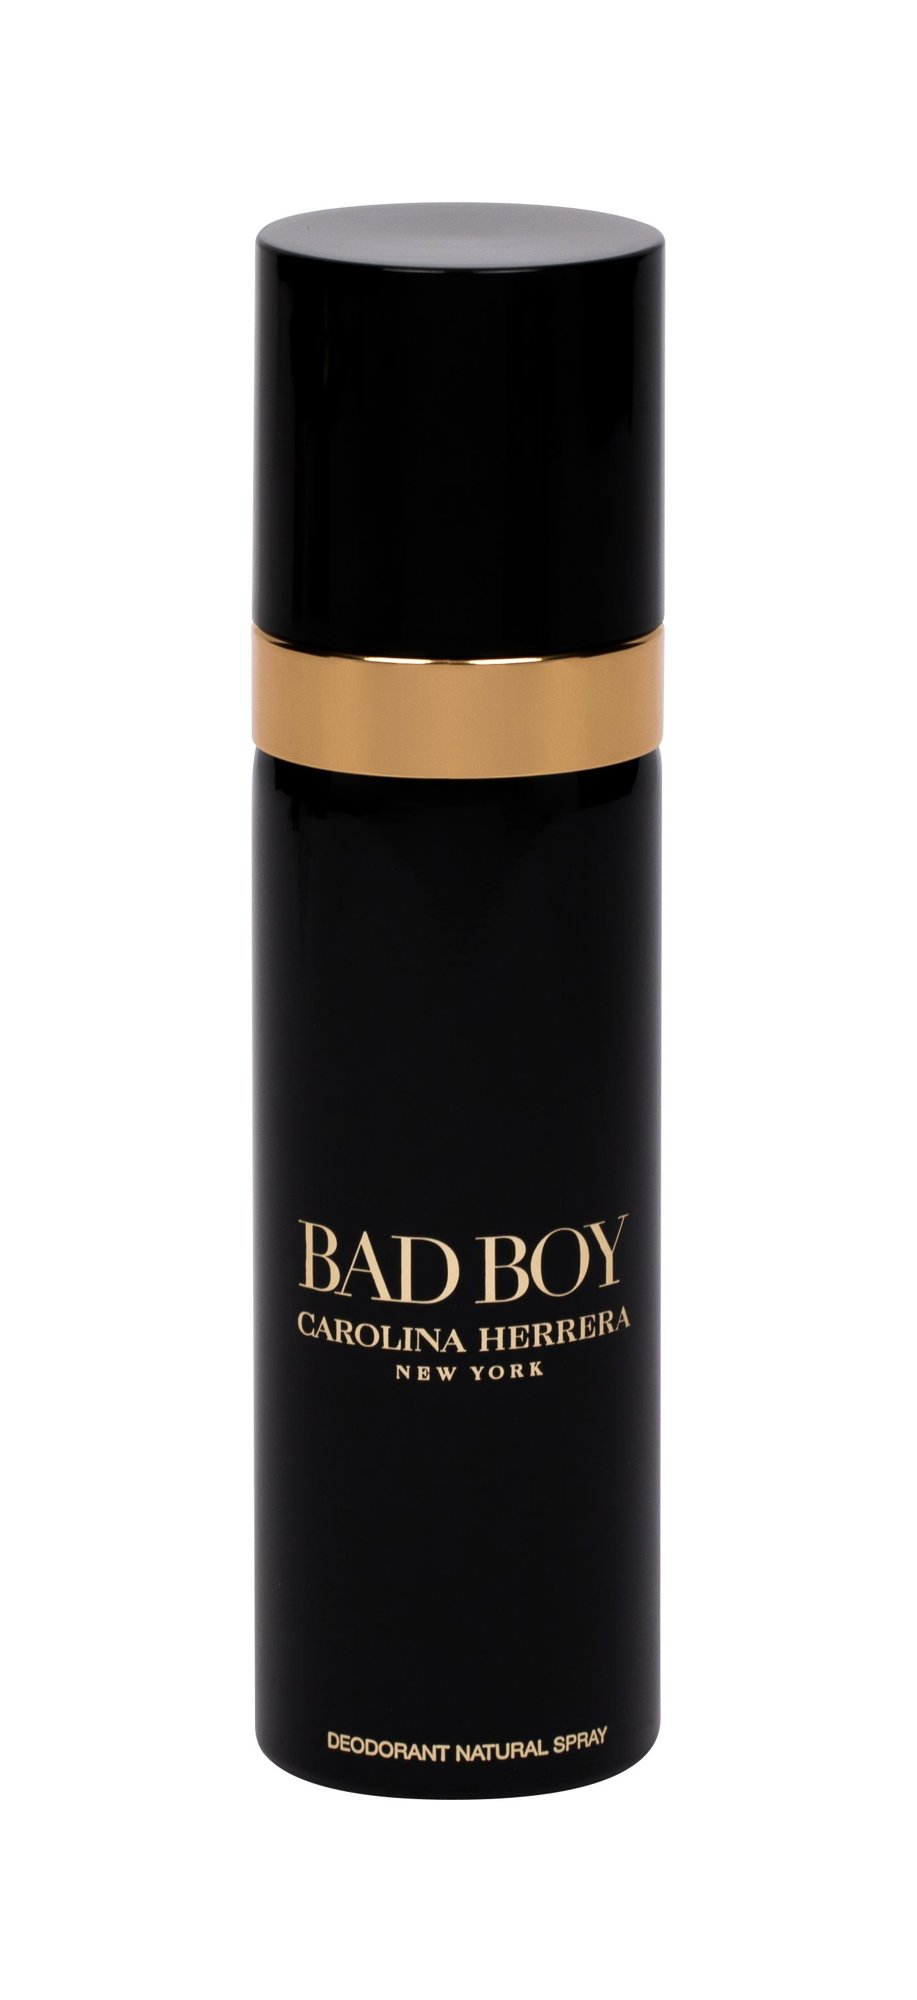 Carolina Herrera Bad Boy, Deodorant 100ml